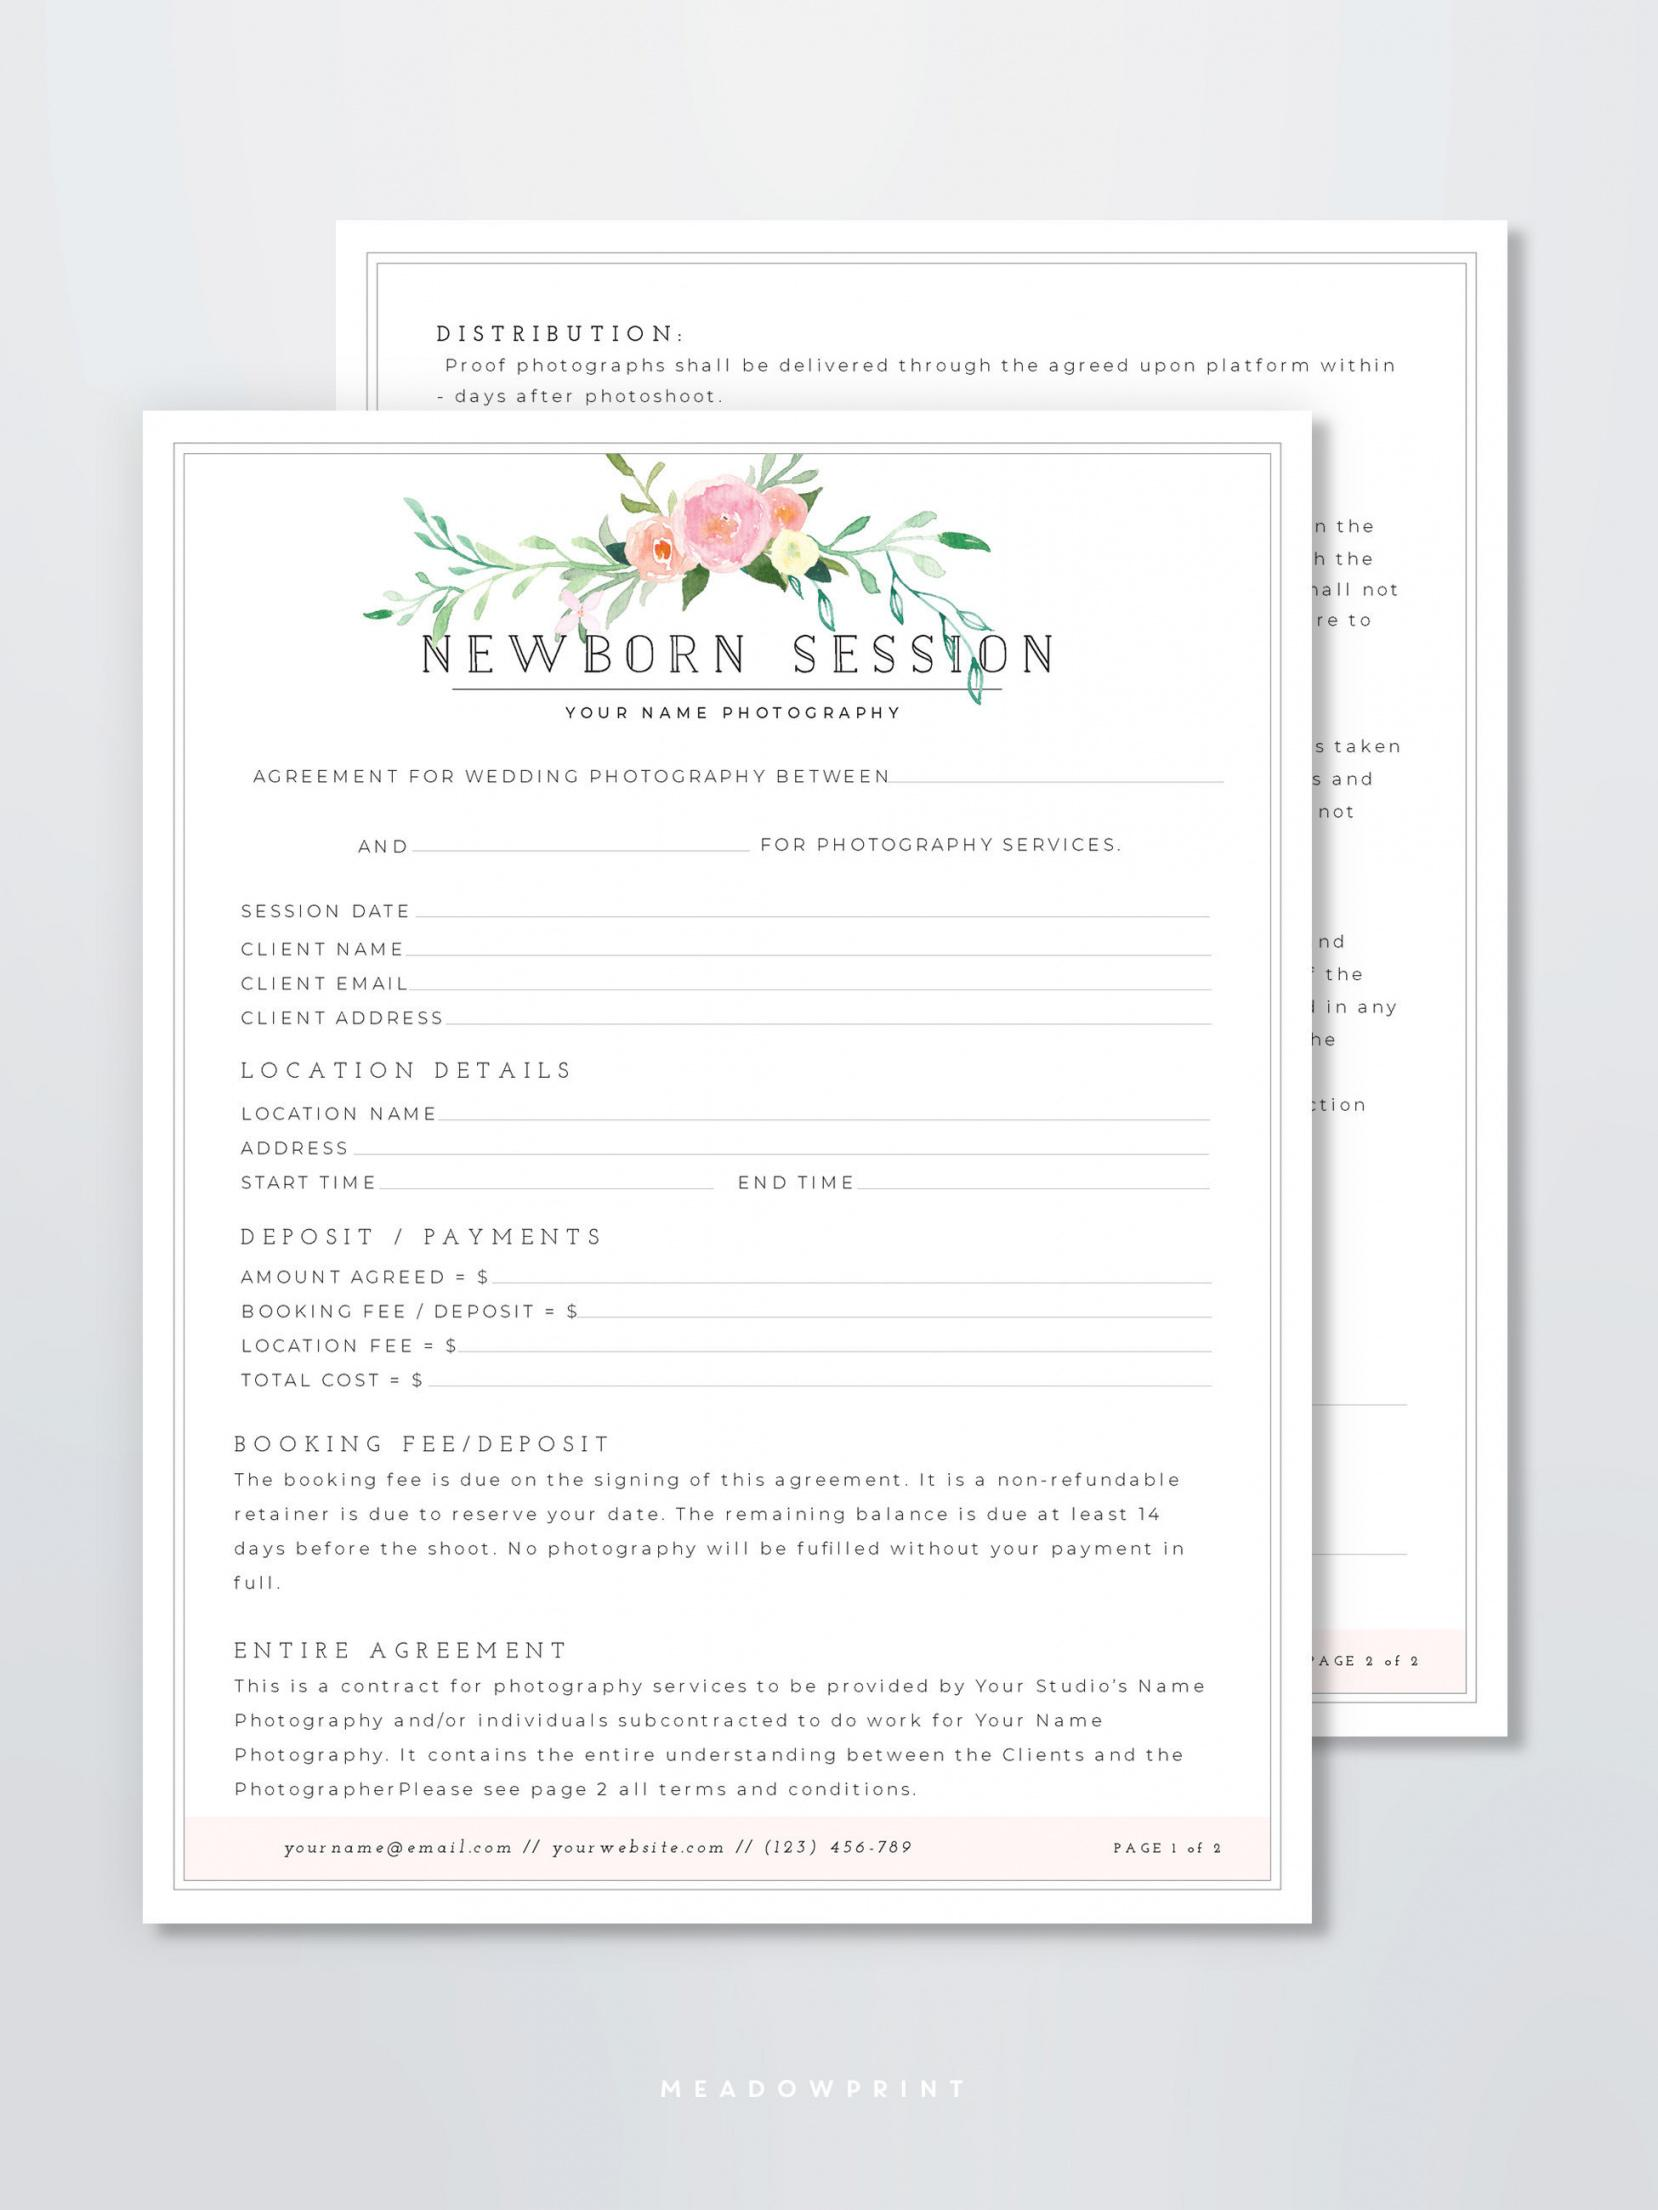 newborn photography contract template photographer branding  etsy newborn photography contract template